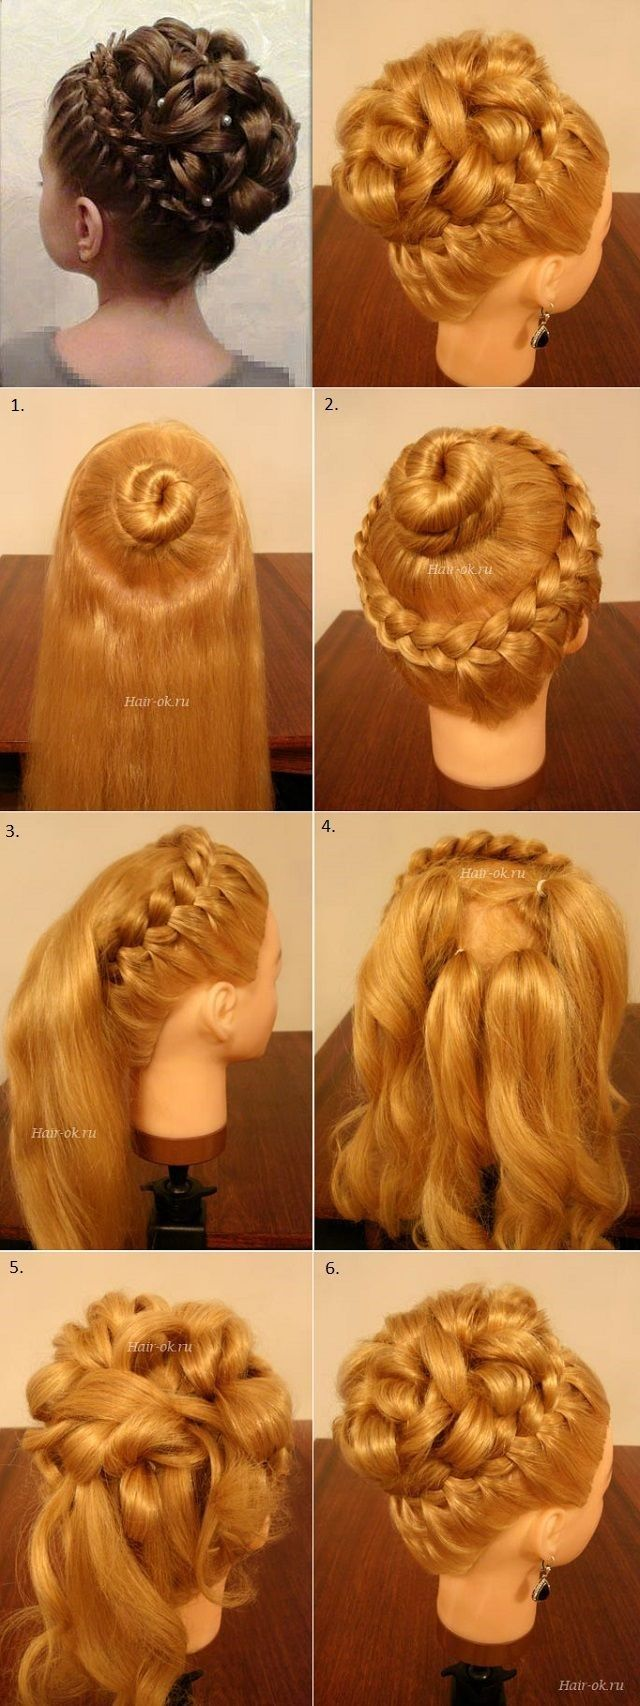 Elegant Braiding Hairstyle With Curls  DIY